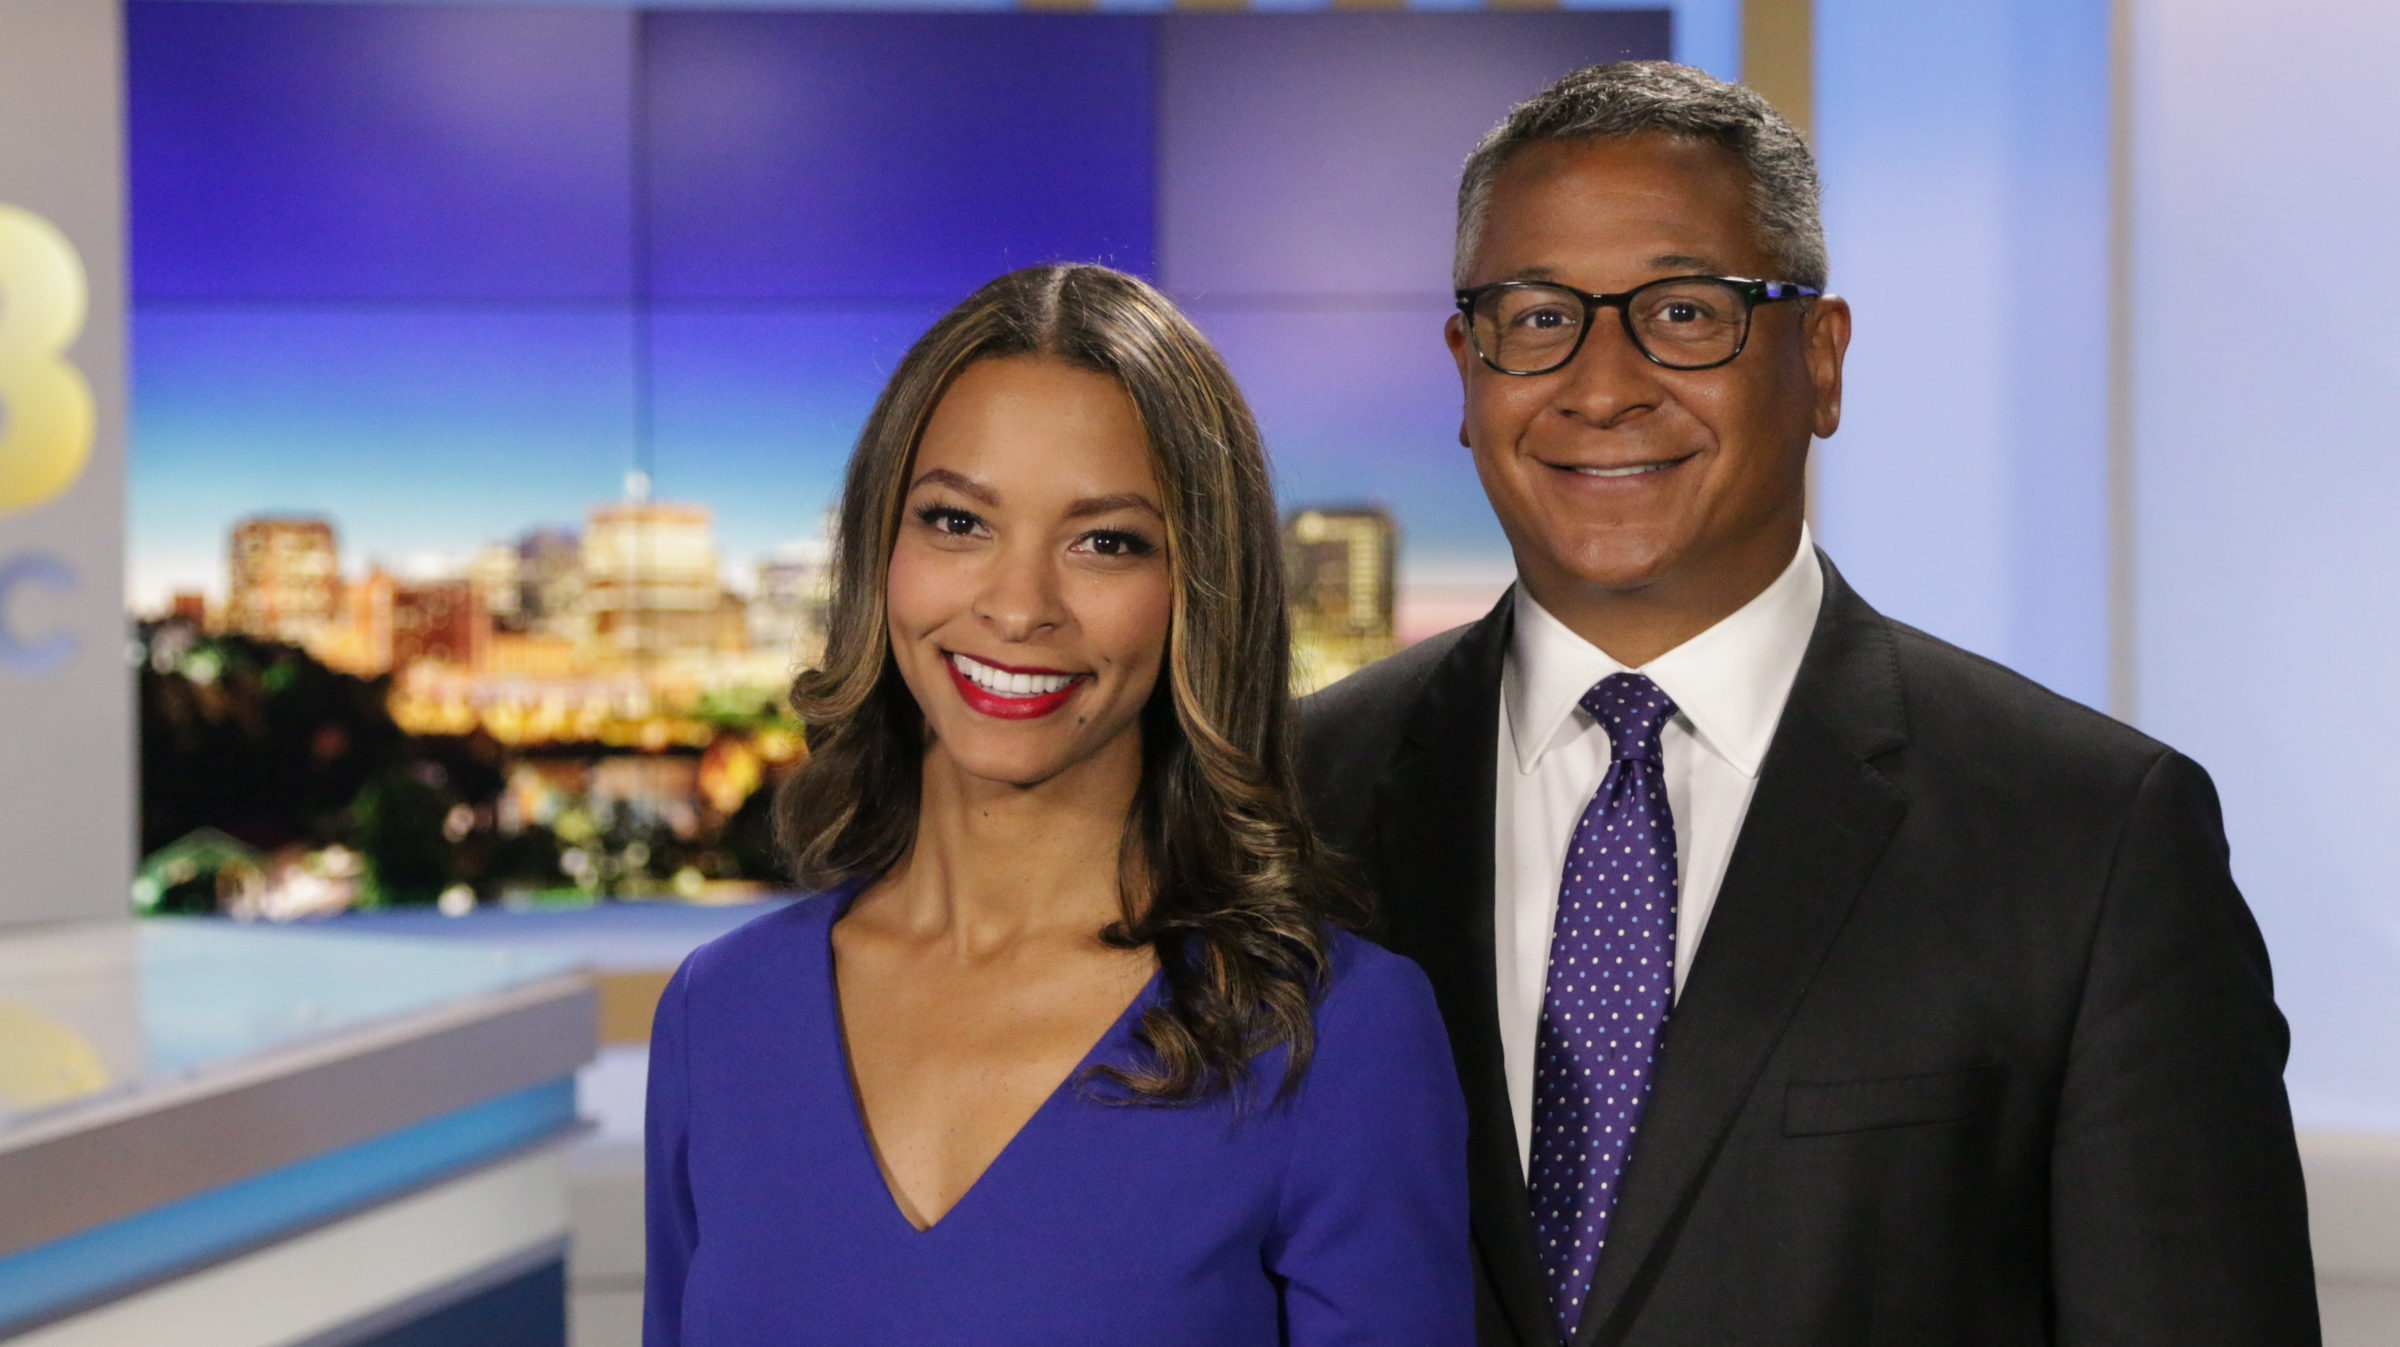 8NEWS And Richmond Welcome Constance Jones To The News Desk